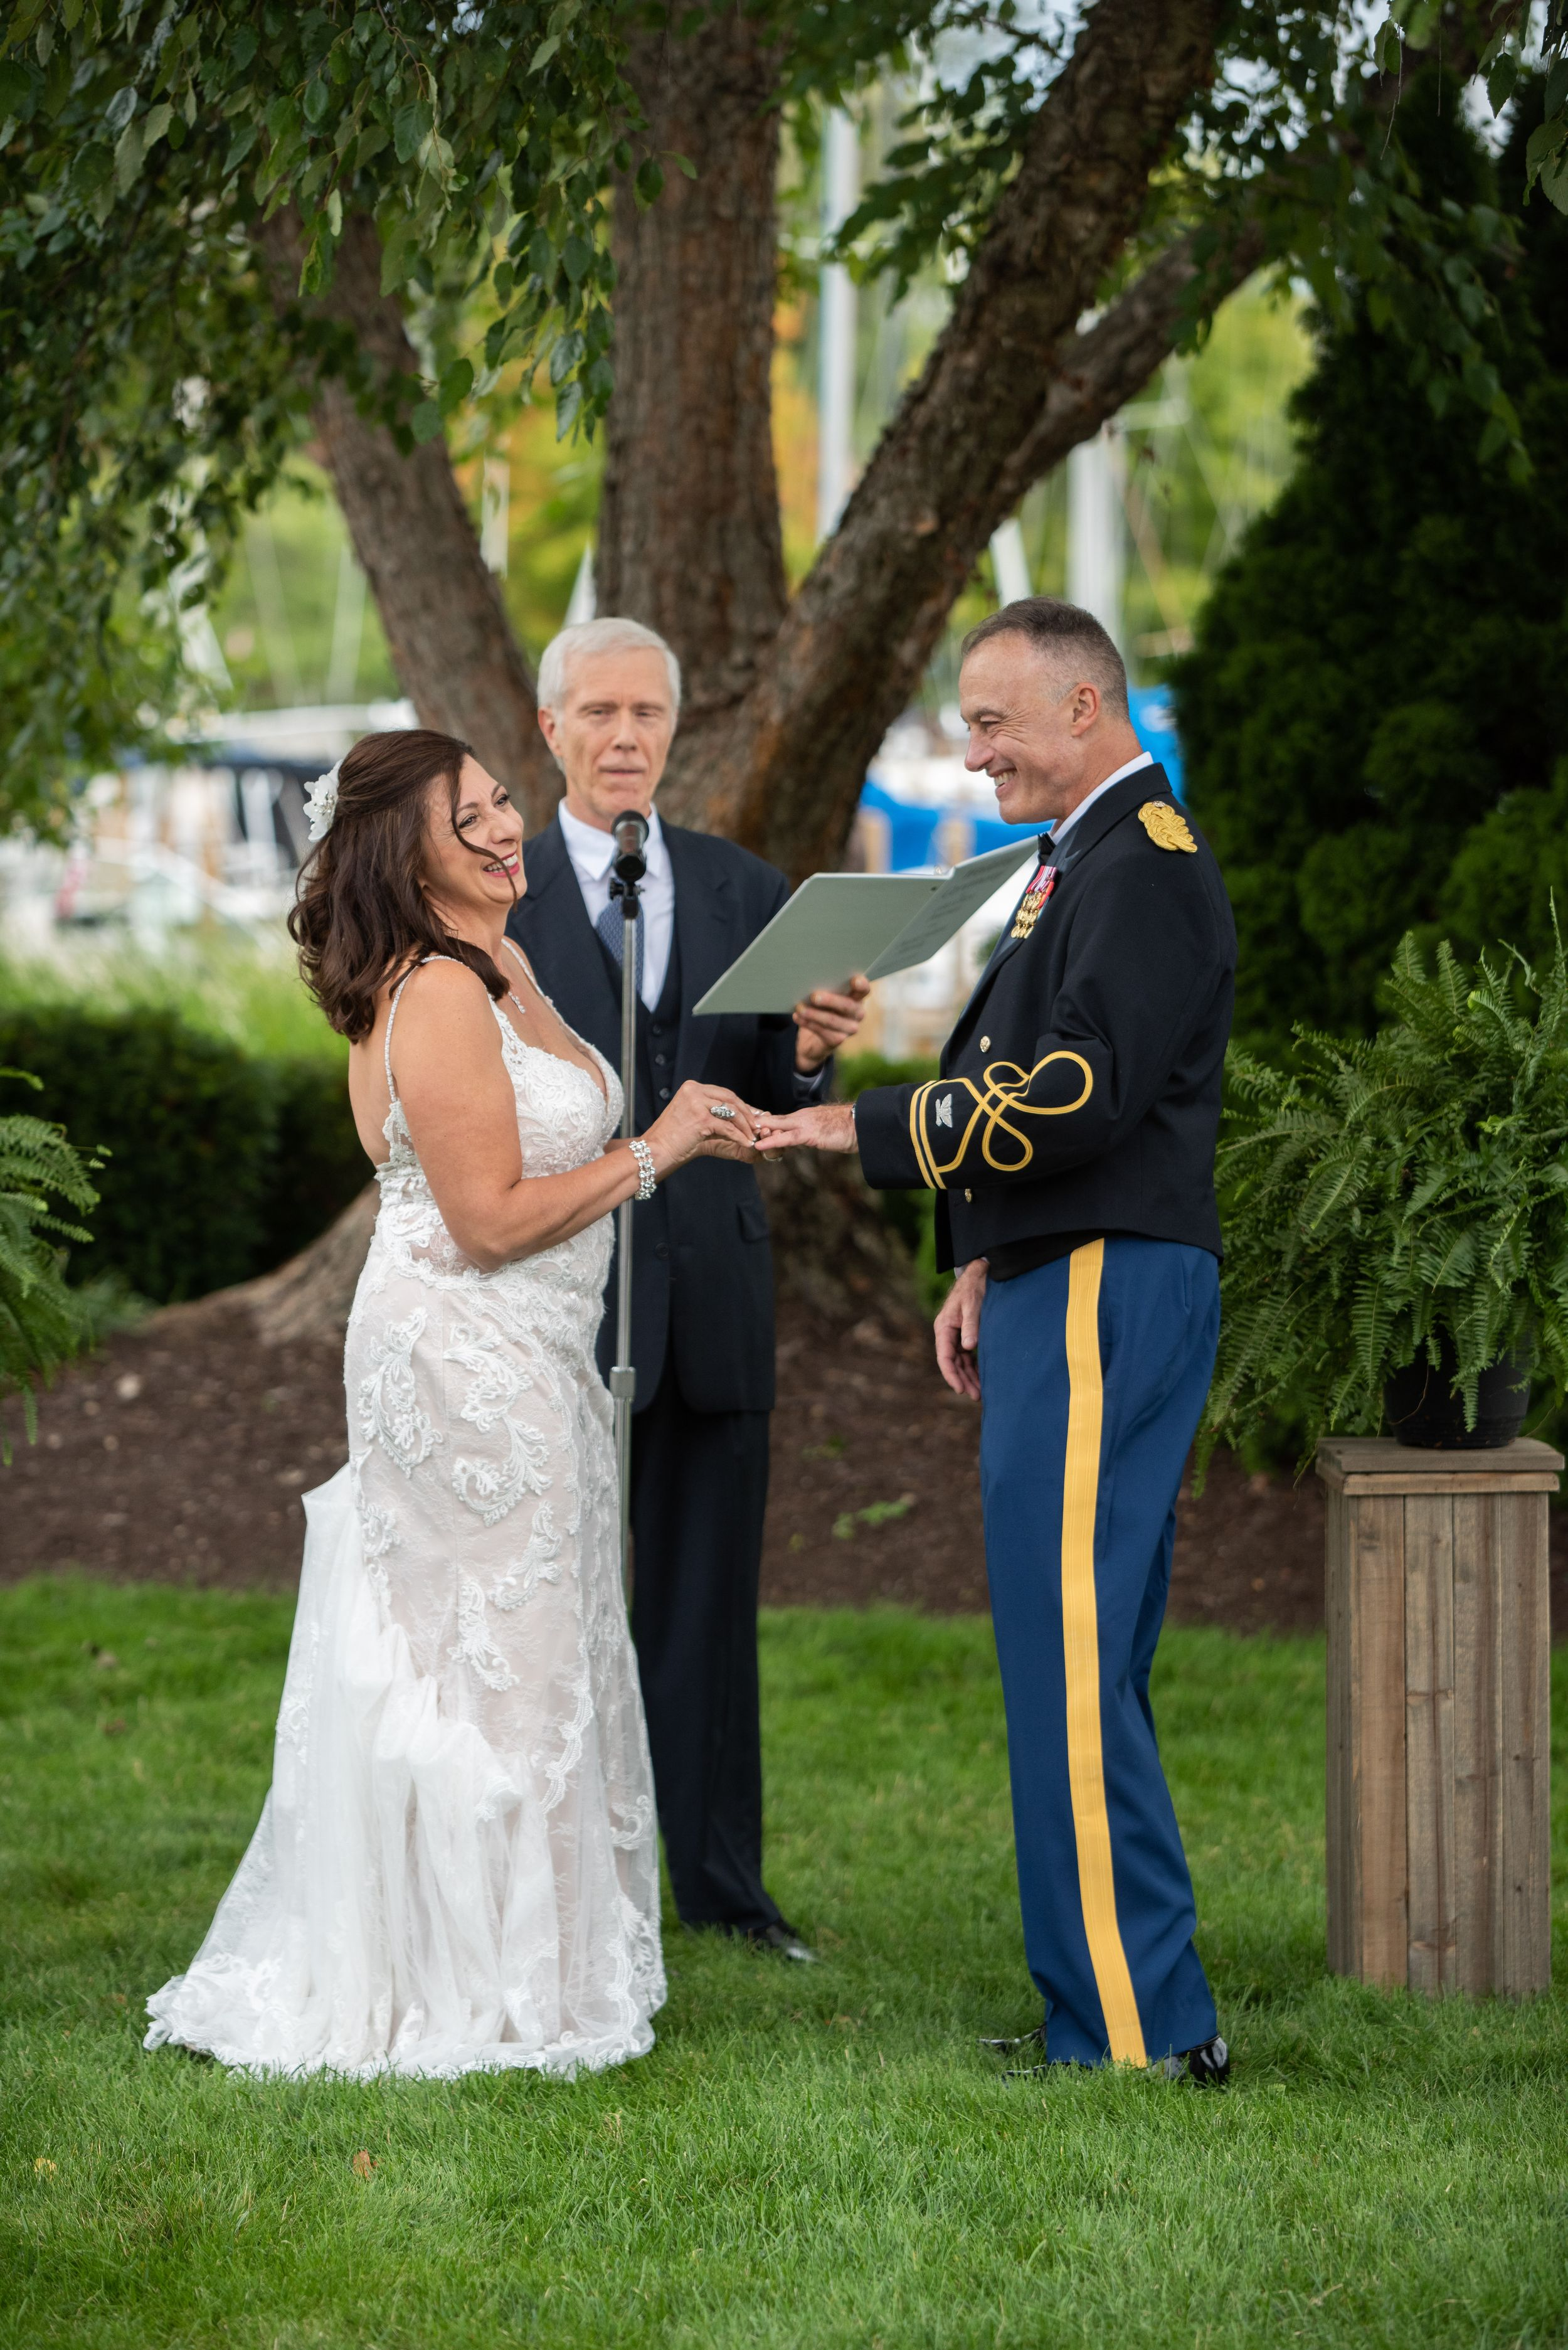 outdoor wedding ceremony, Cleveland Yachting Club, Ohio